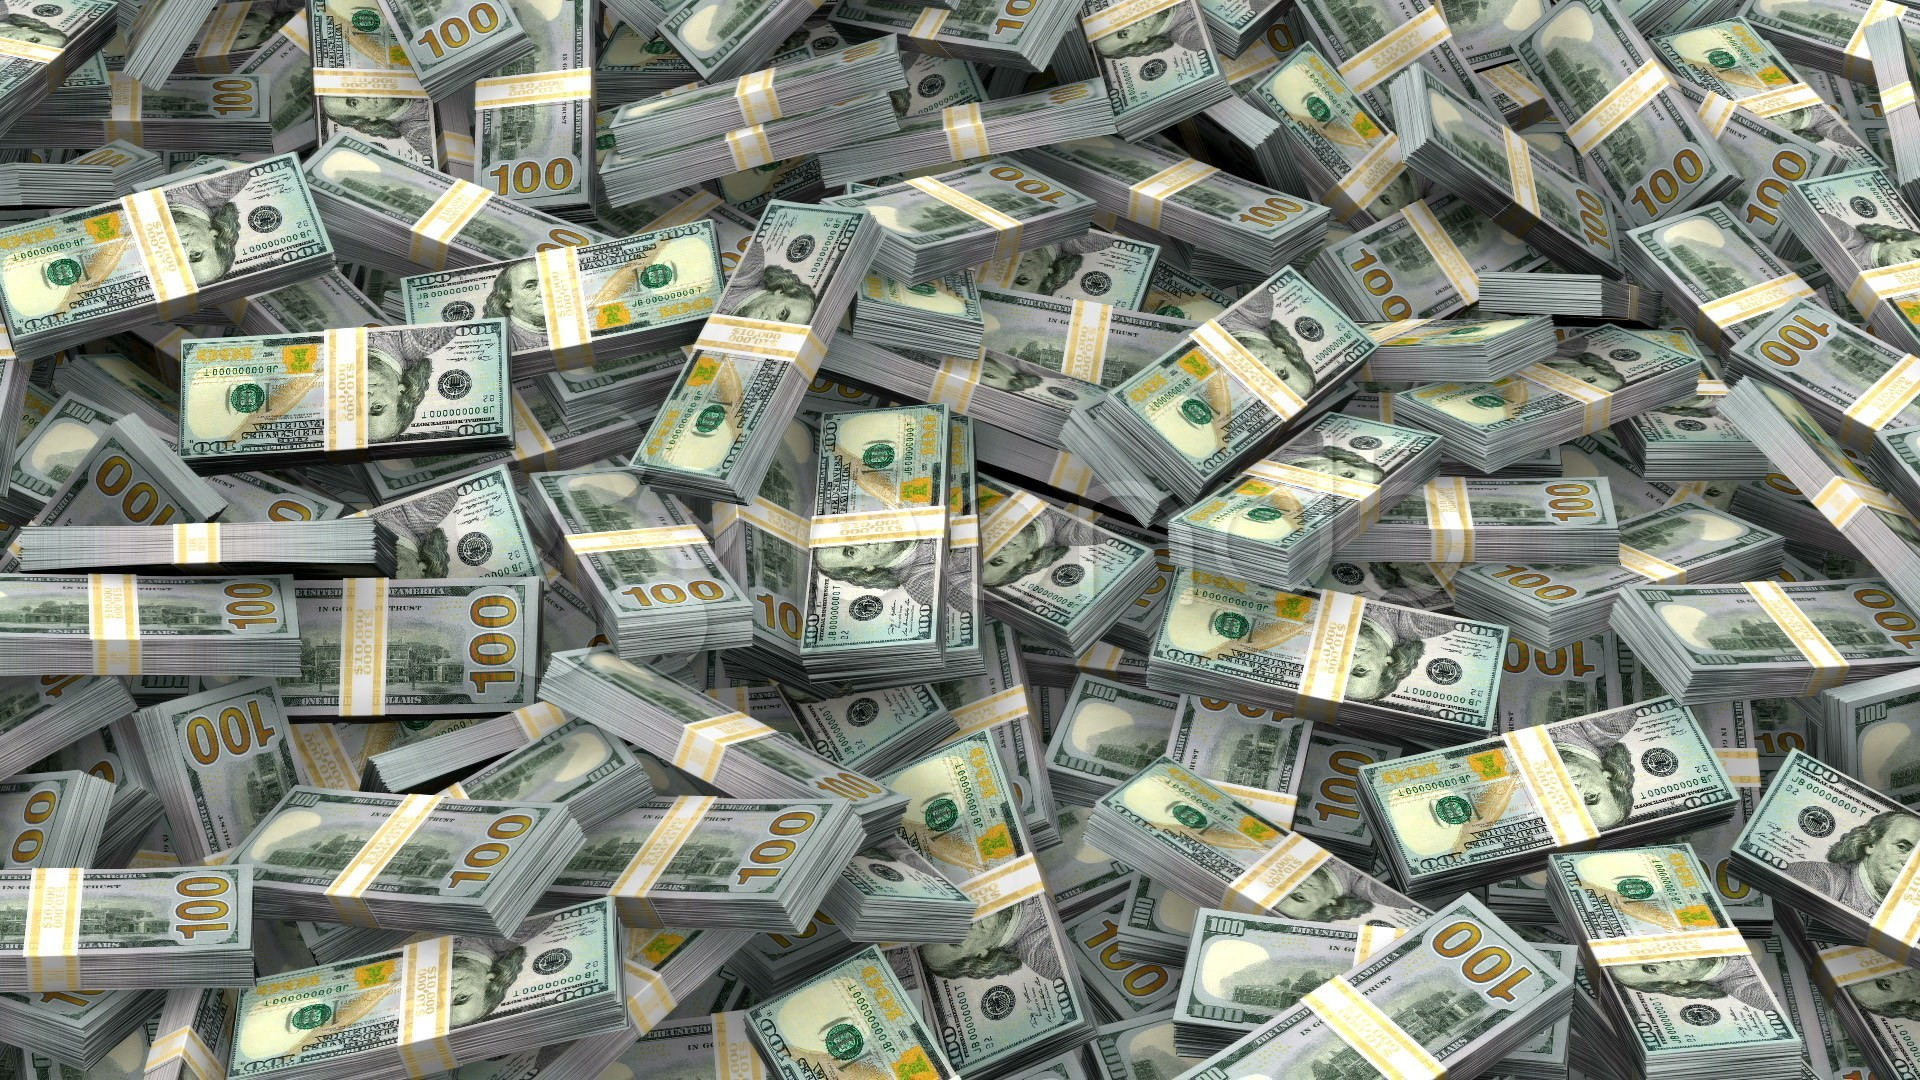 1920x1080 ... Great Hd Phone Wallpapers 100 Dollar Bill Wallpaper in 100 Dollar Bill  Wallpaper WallpaperSafari 4K Pictures